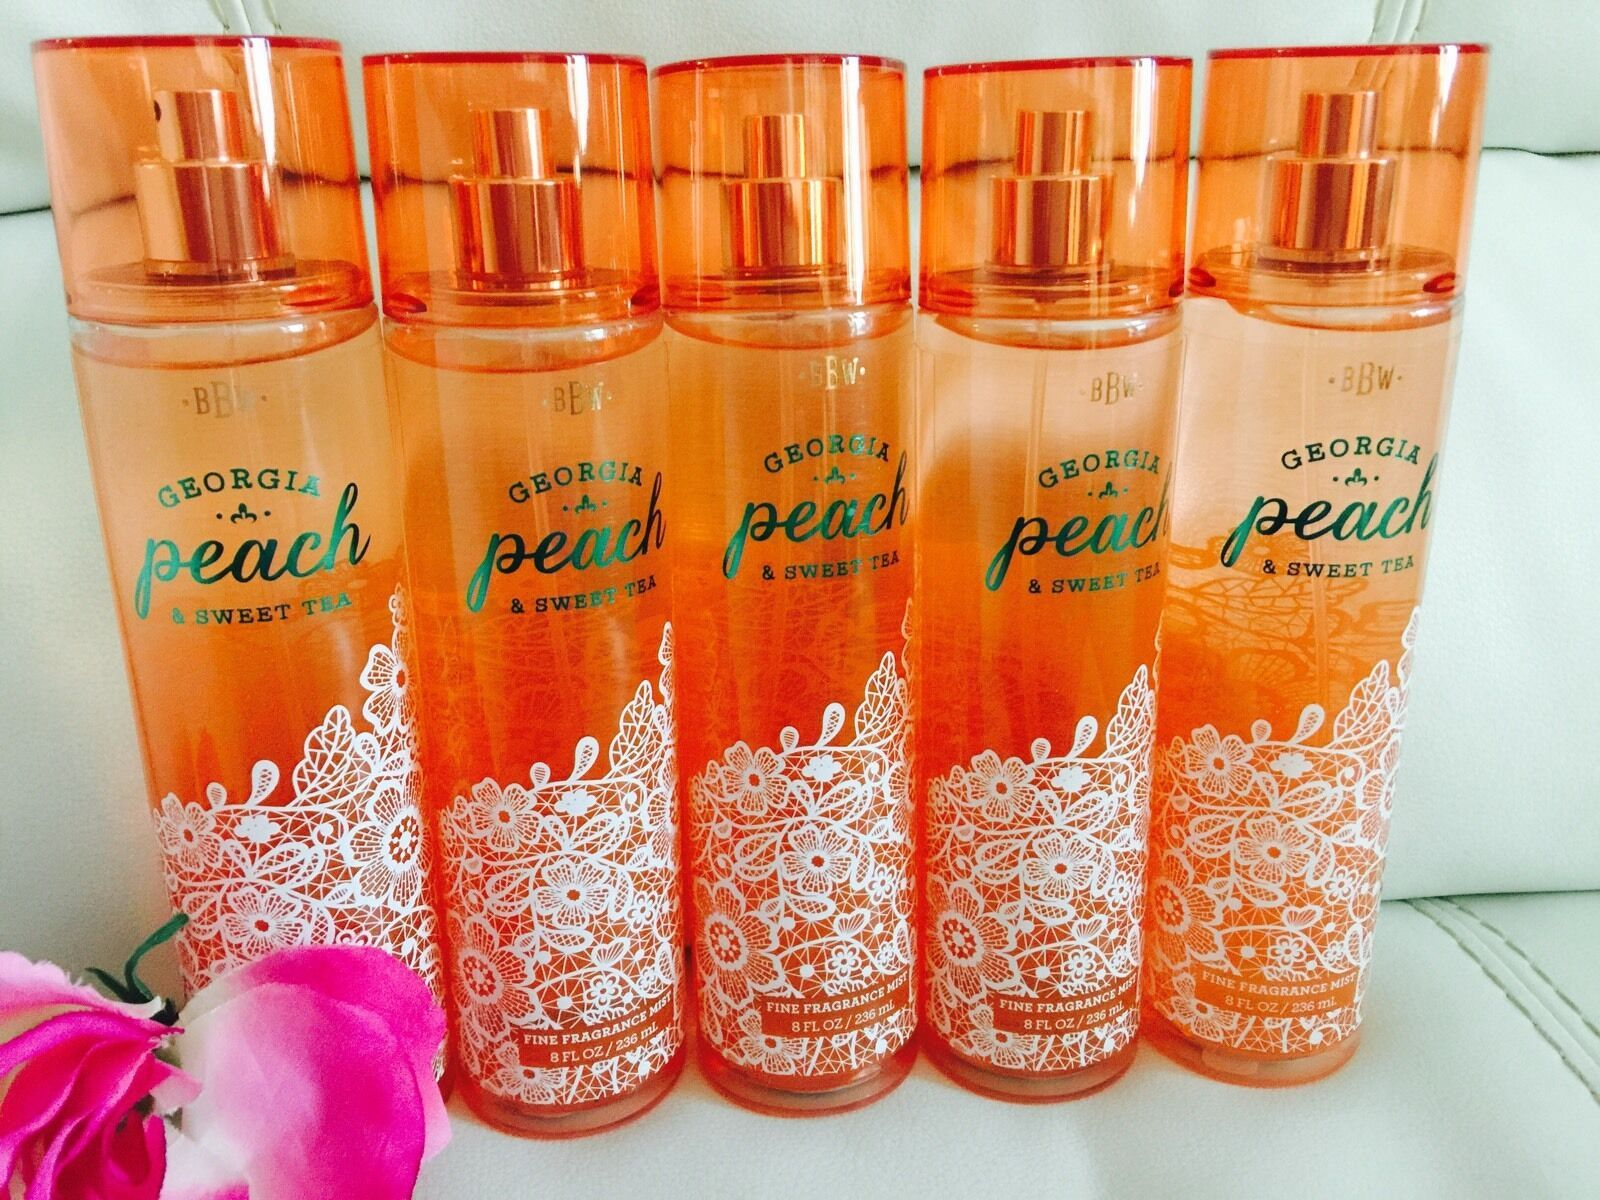 Total 5 Bath & Body Works Georgia Peach & Sweet Tea  Body Mist Full Size 8.4 Oz